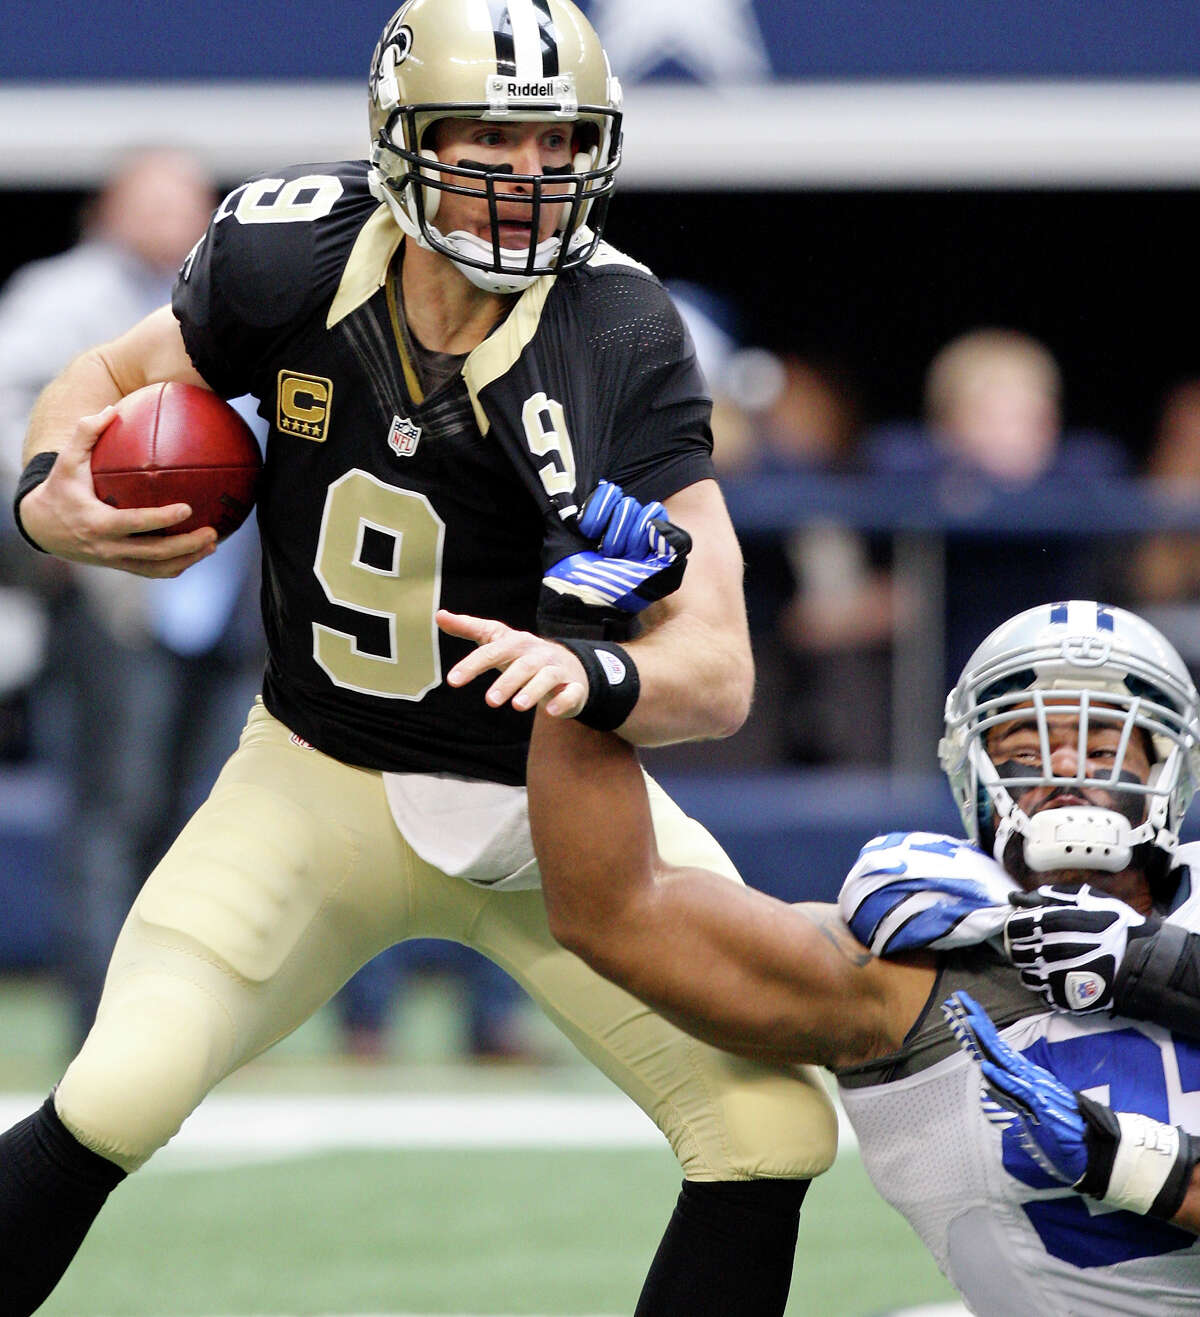 New Orleans Saints' Drew Brees looks for room around Dallas Cowboys' Jason Hatcher during first half action Sunday Dec. 23, 2012 at Cowboys Stadium in Arlington, Tx.